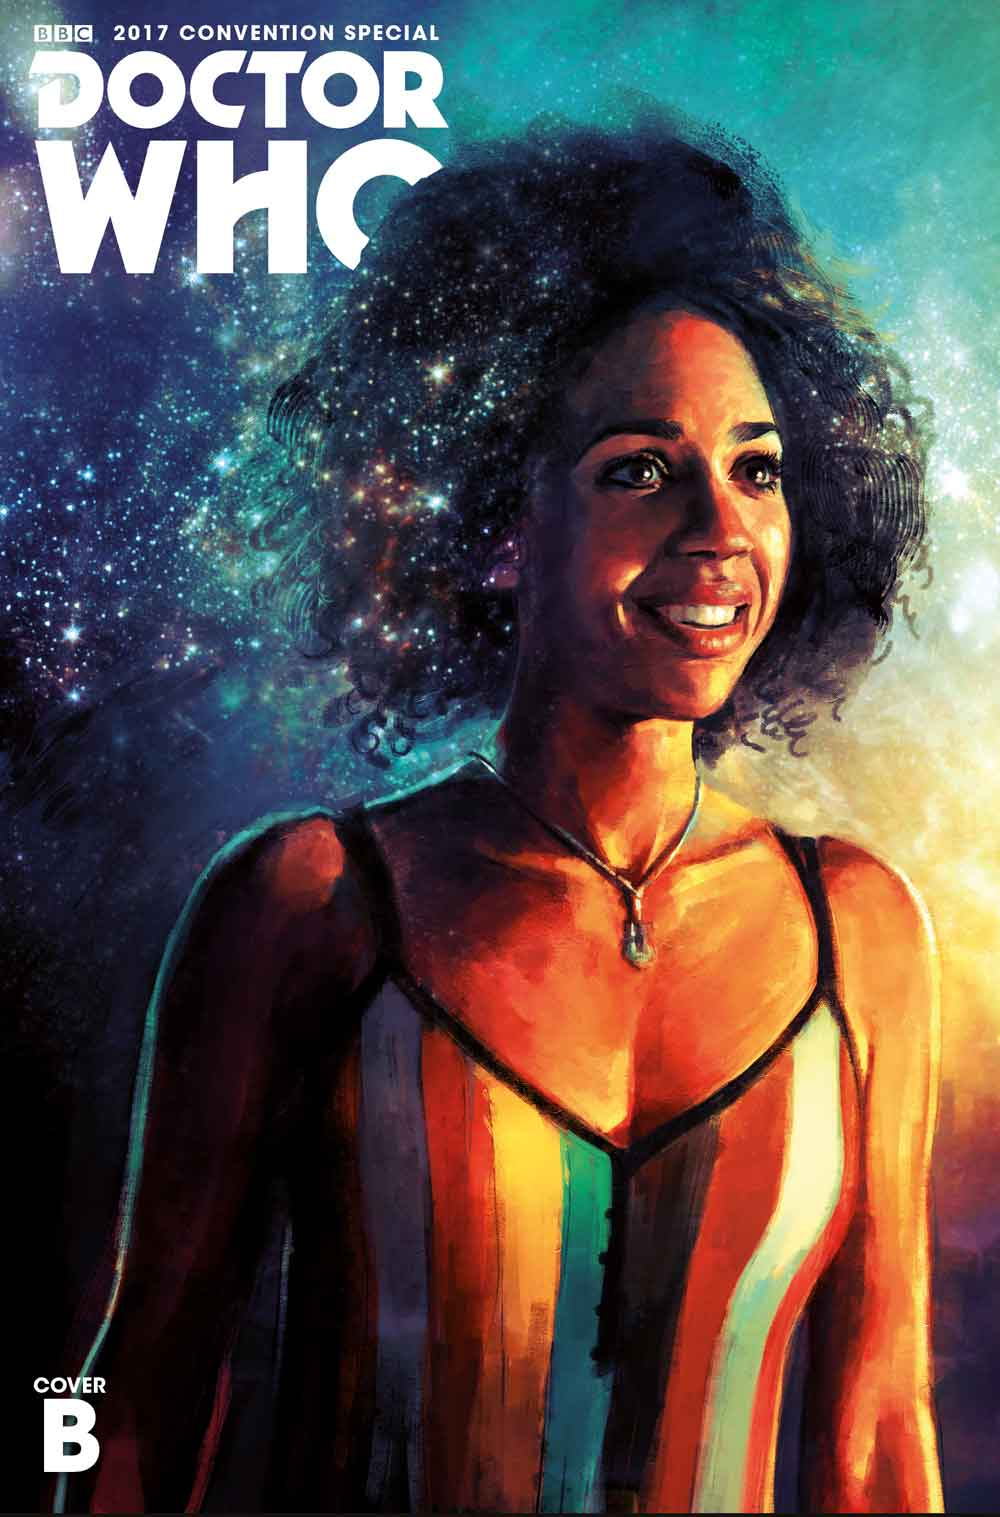 Doctor Who San Diego Comic-Con Titan Comics Special Cover B by Alice X. Zhang